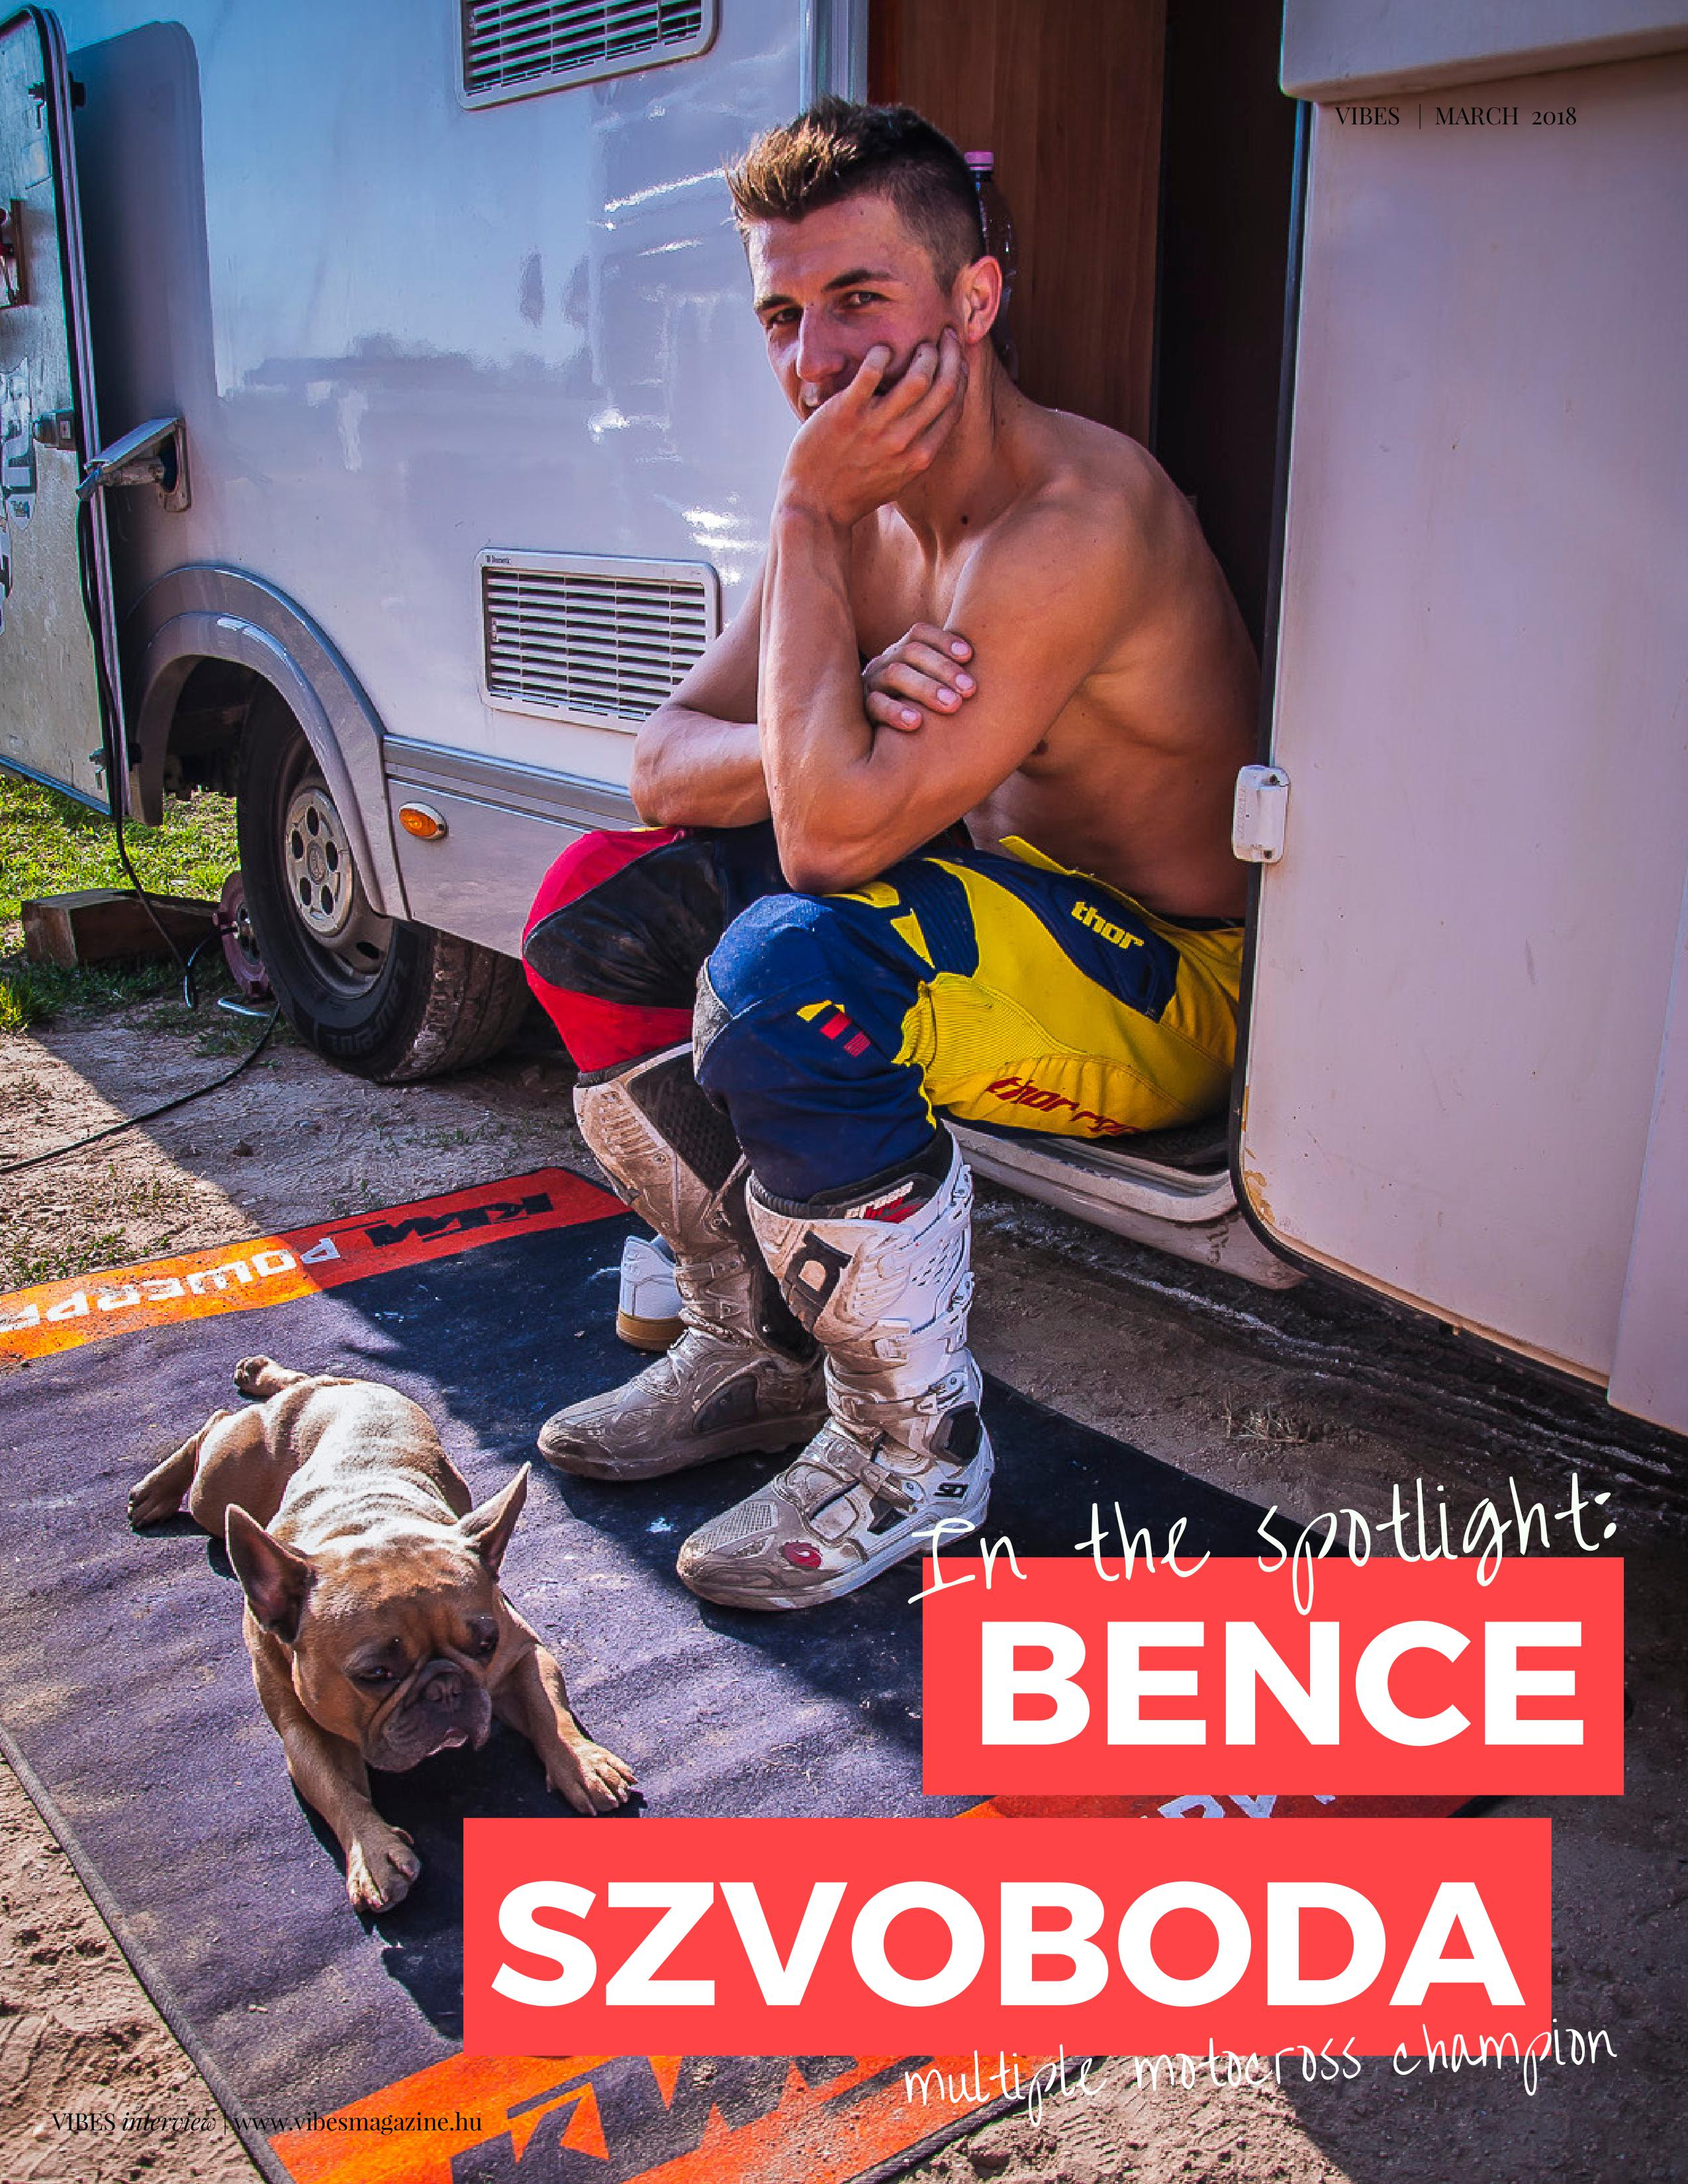 Interview with The Hungarian Bulldog; aka Bence Szvoboda multiple Motocross Champion